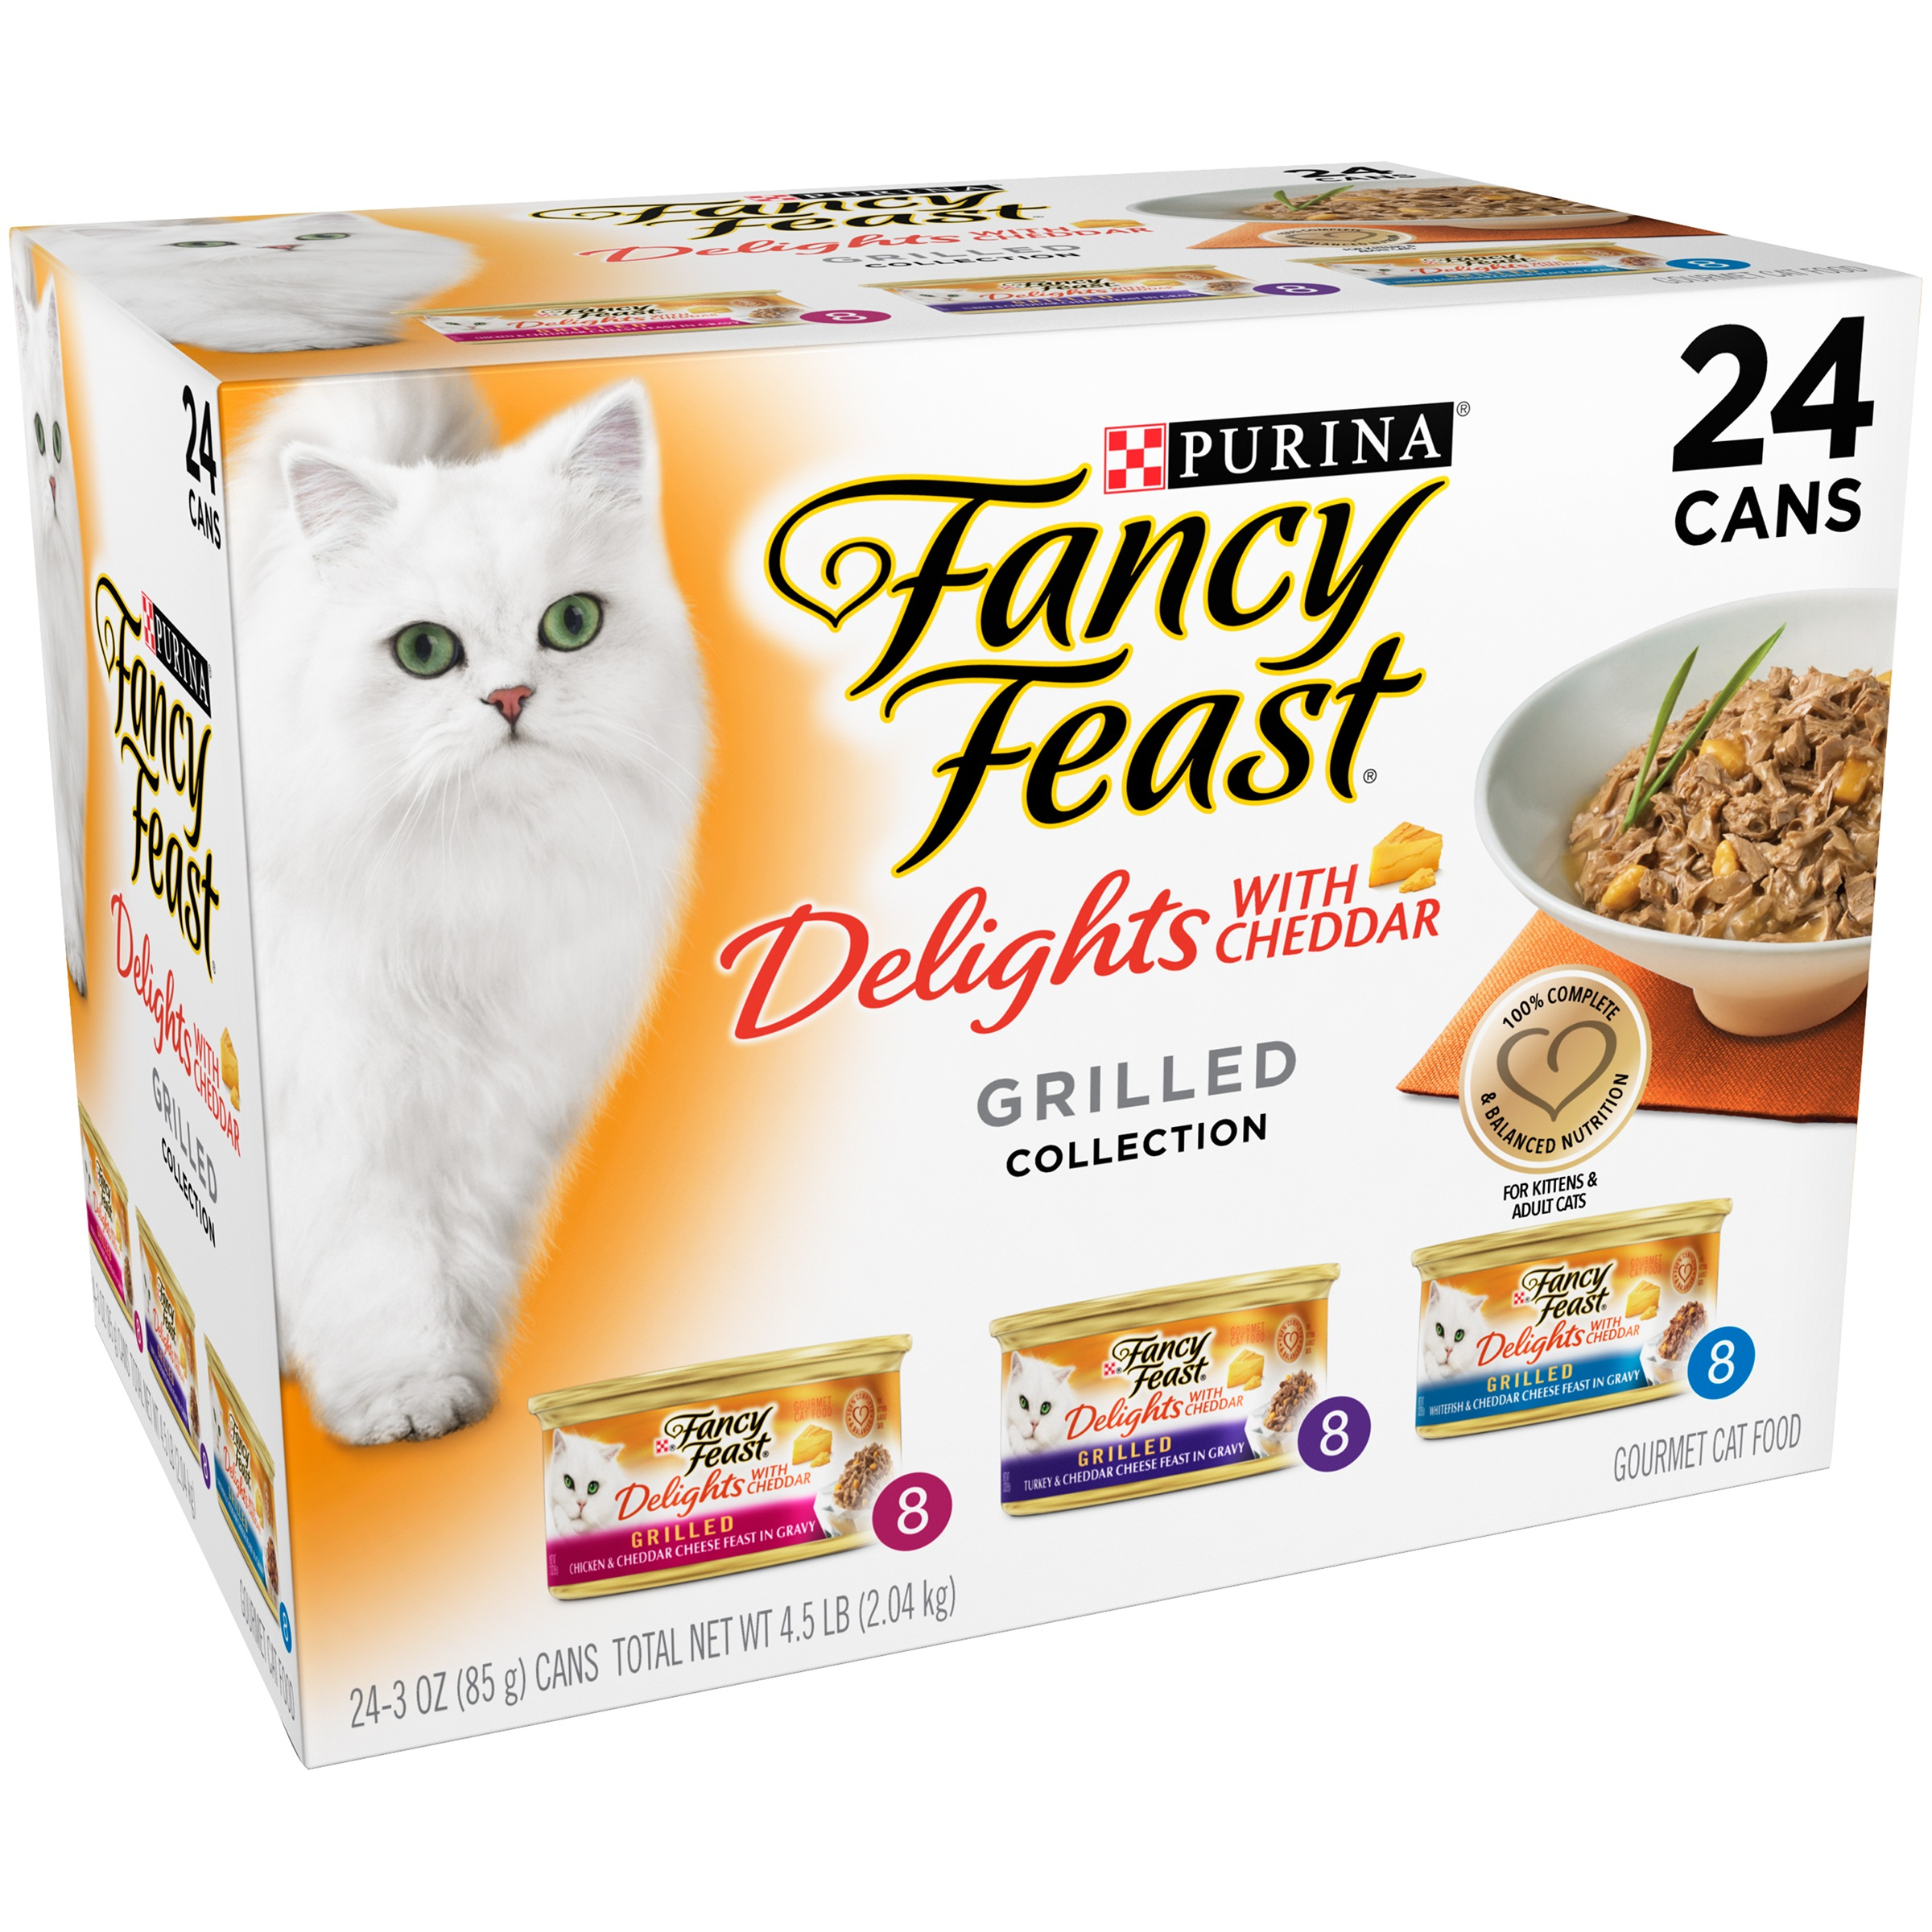 Purina Fancy Feast Delights with Cheddar Grilled Collection Wet Cat Food (24) 3-oz. Cans